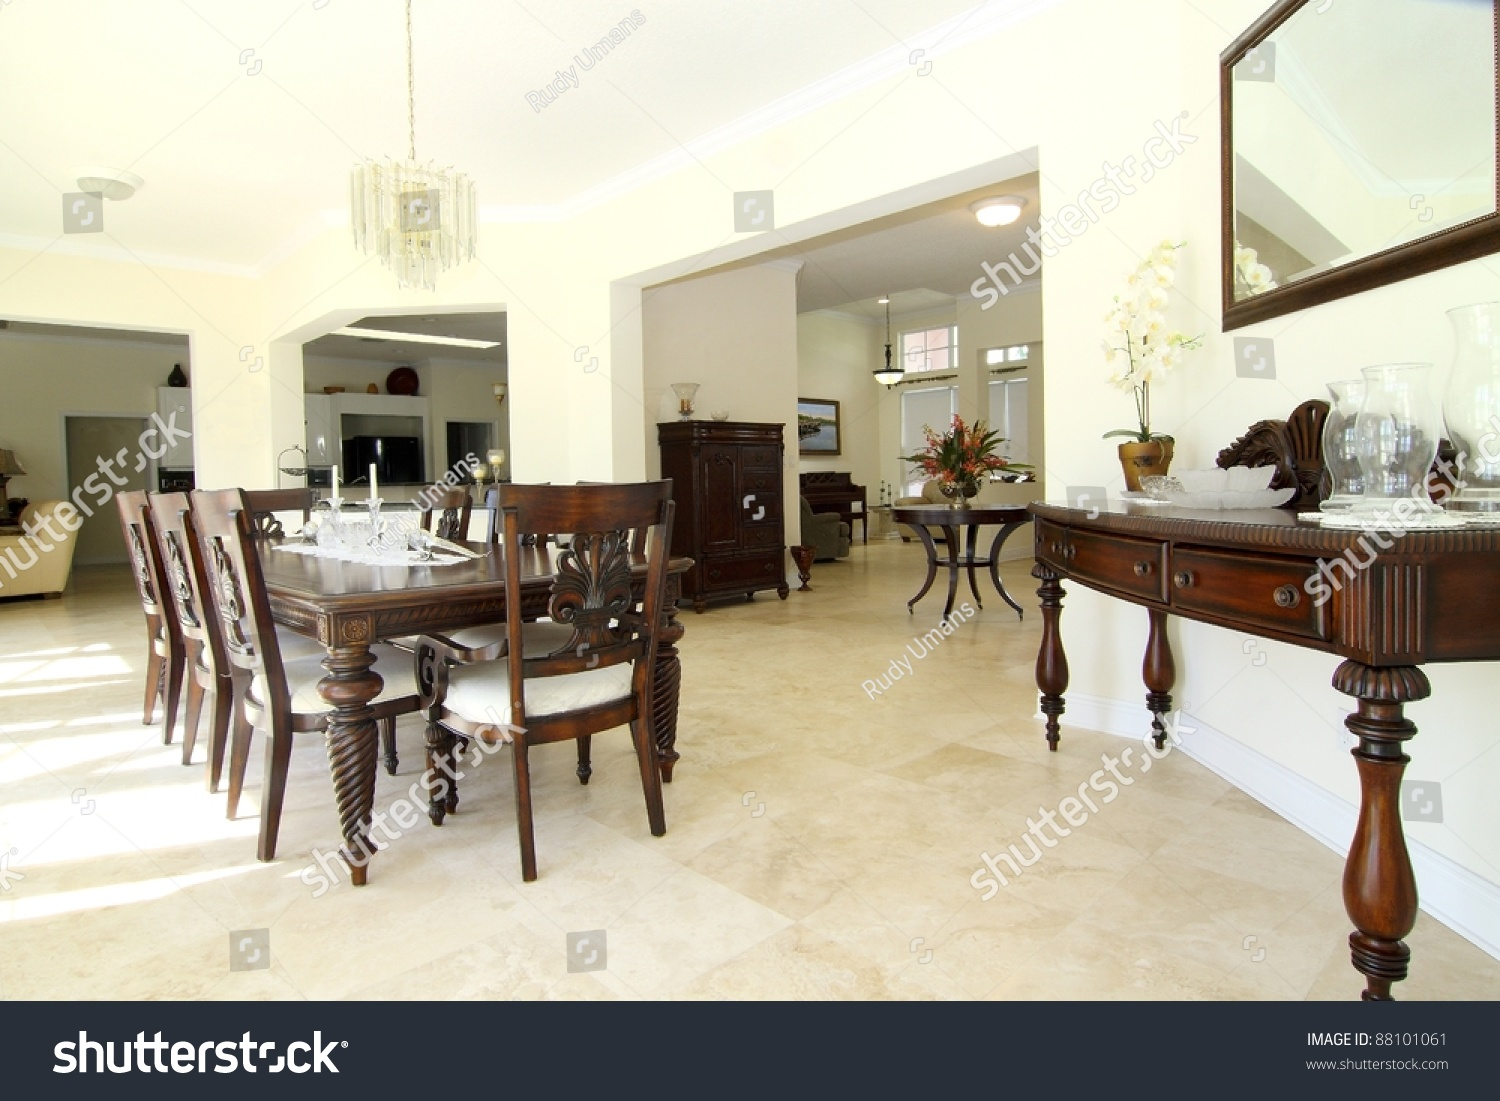 Travertine dining room table -  Dining Room With Travertine Floor Preview Save To A Lightbox